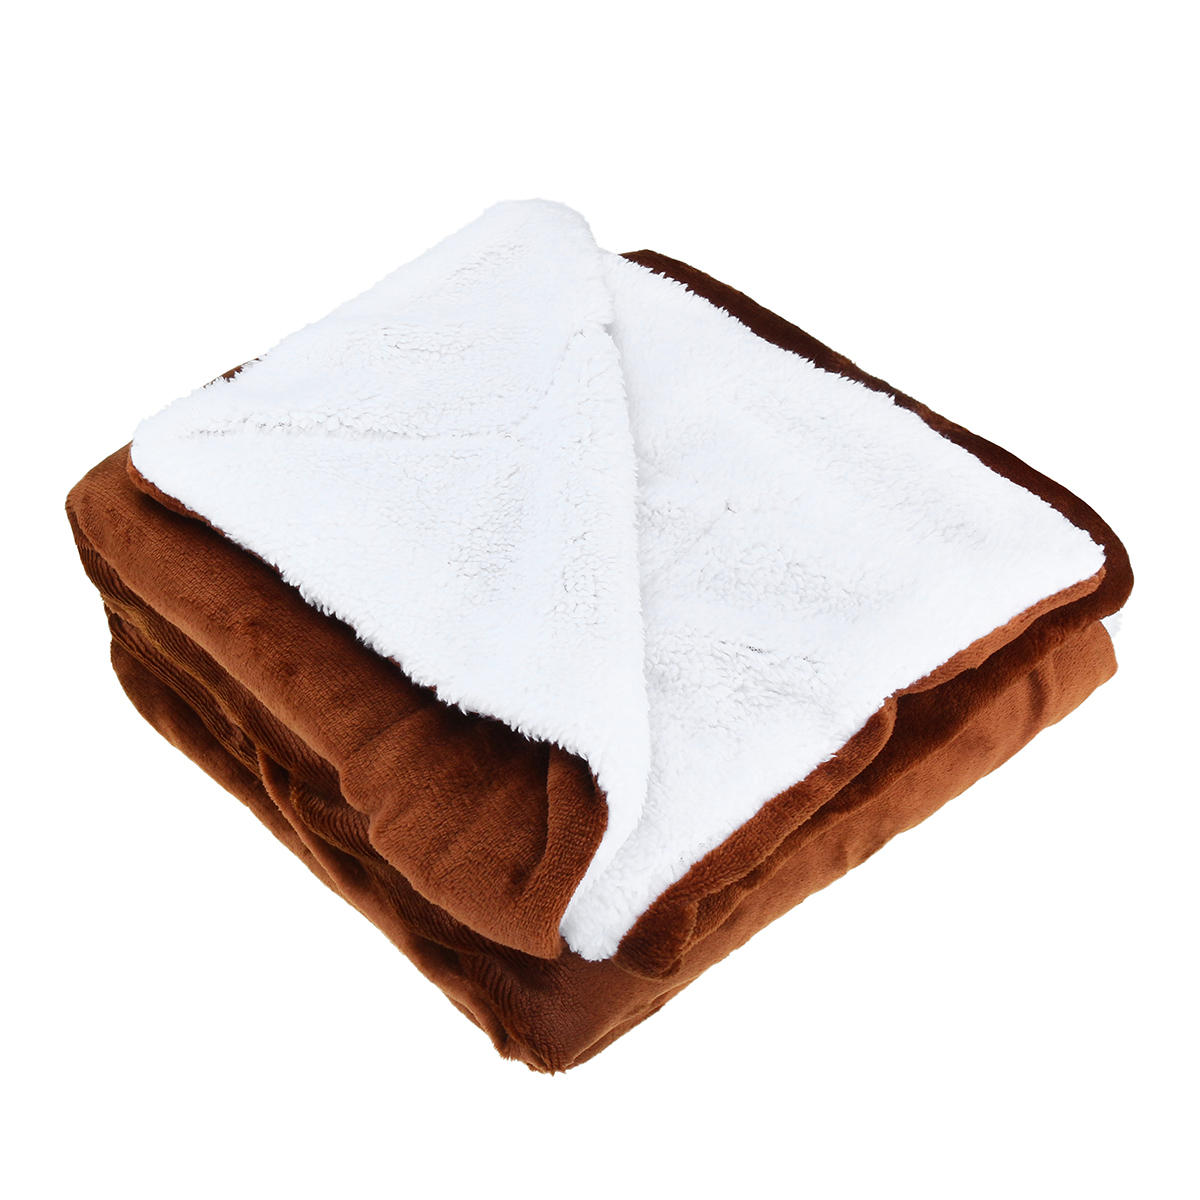 4 Colors Flannel Sherpa Throws Fleece Blankets Sofa Bedding Office Sleep Large Double King Soft Warm - 4